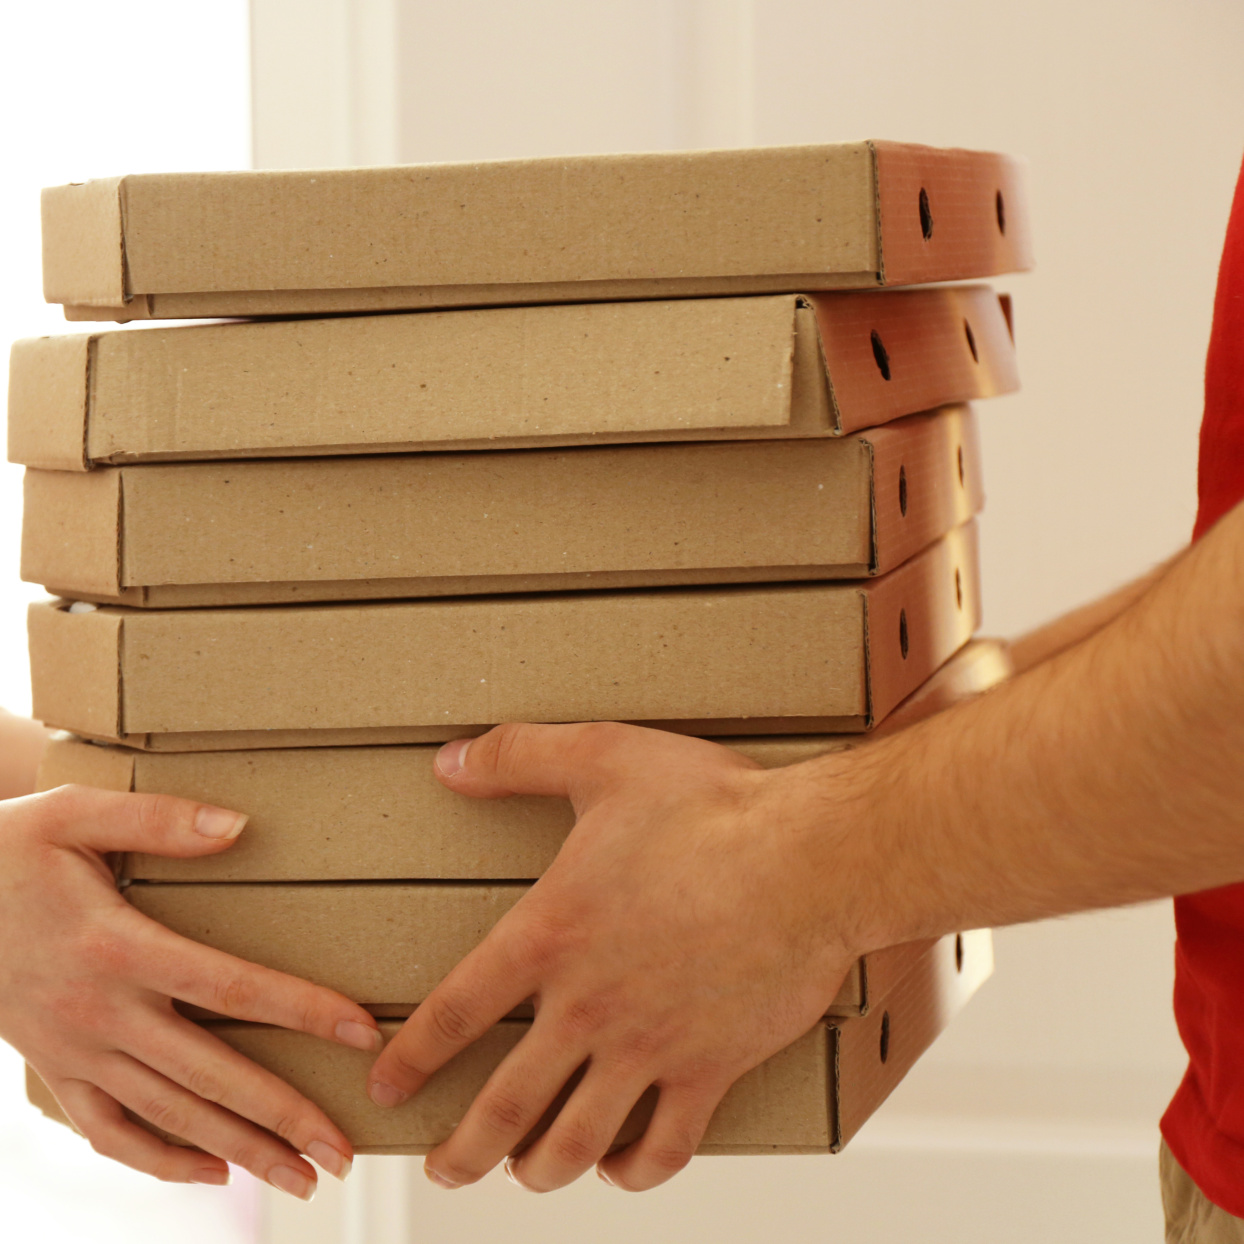 Survey Reveals 1 In 4 Delivery Drivers Admit to Tasting Customers' Food Before It's Delivered